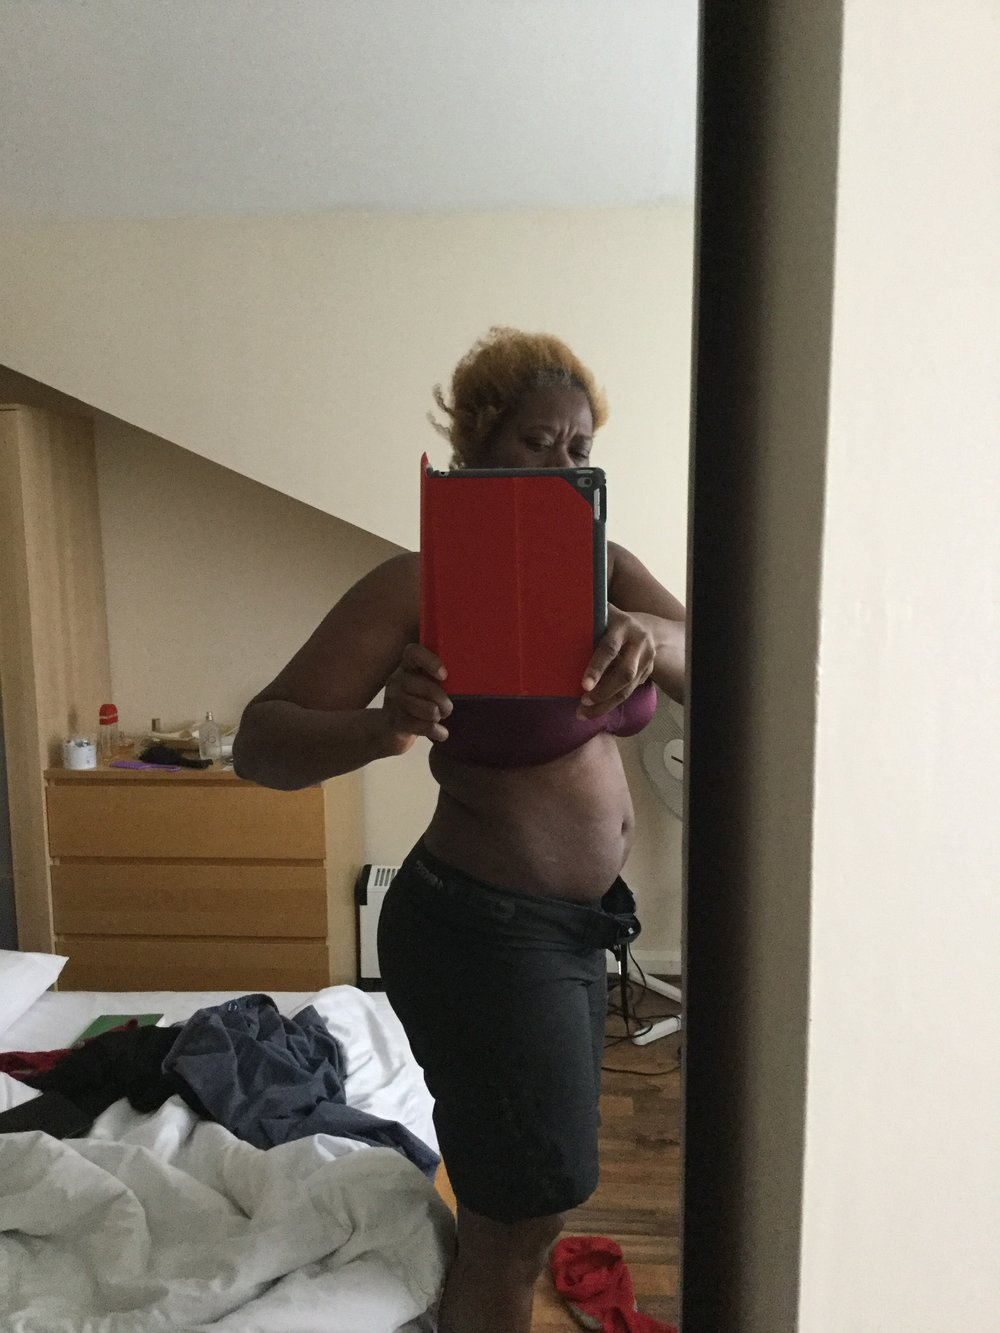 March 2016: Big Bellied Girl - I had just started the change in diet